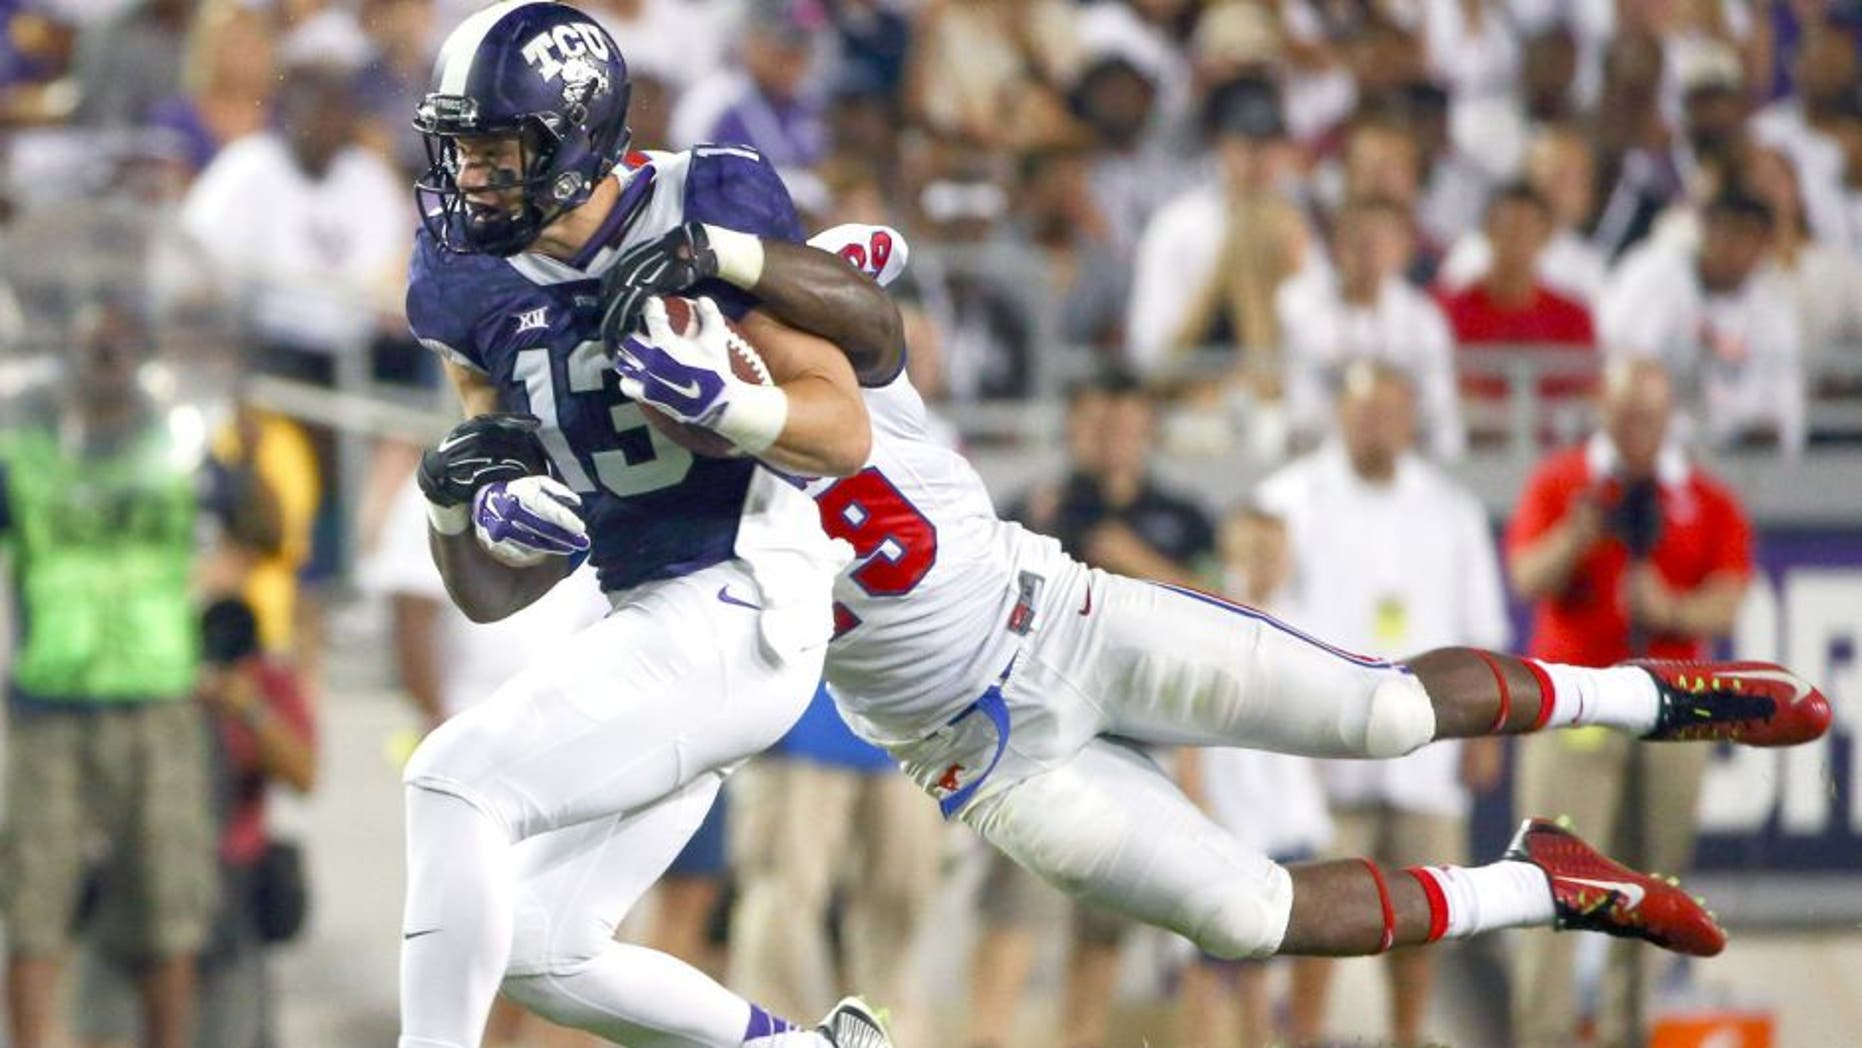 Sep 19, 2015; Fort Worth, TX, USA; TCU Horned Frogs wide receiver Ty Slanina (13) runs with the ball as Southern Methodist Mustangs defensive back Darrion Richardson (29) defends during the first half at Amon G. Carter Stadium. Mandatory Credit: Kevin Jairaj-USA TODAY Sports